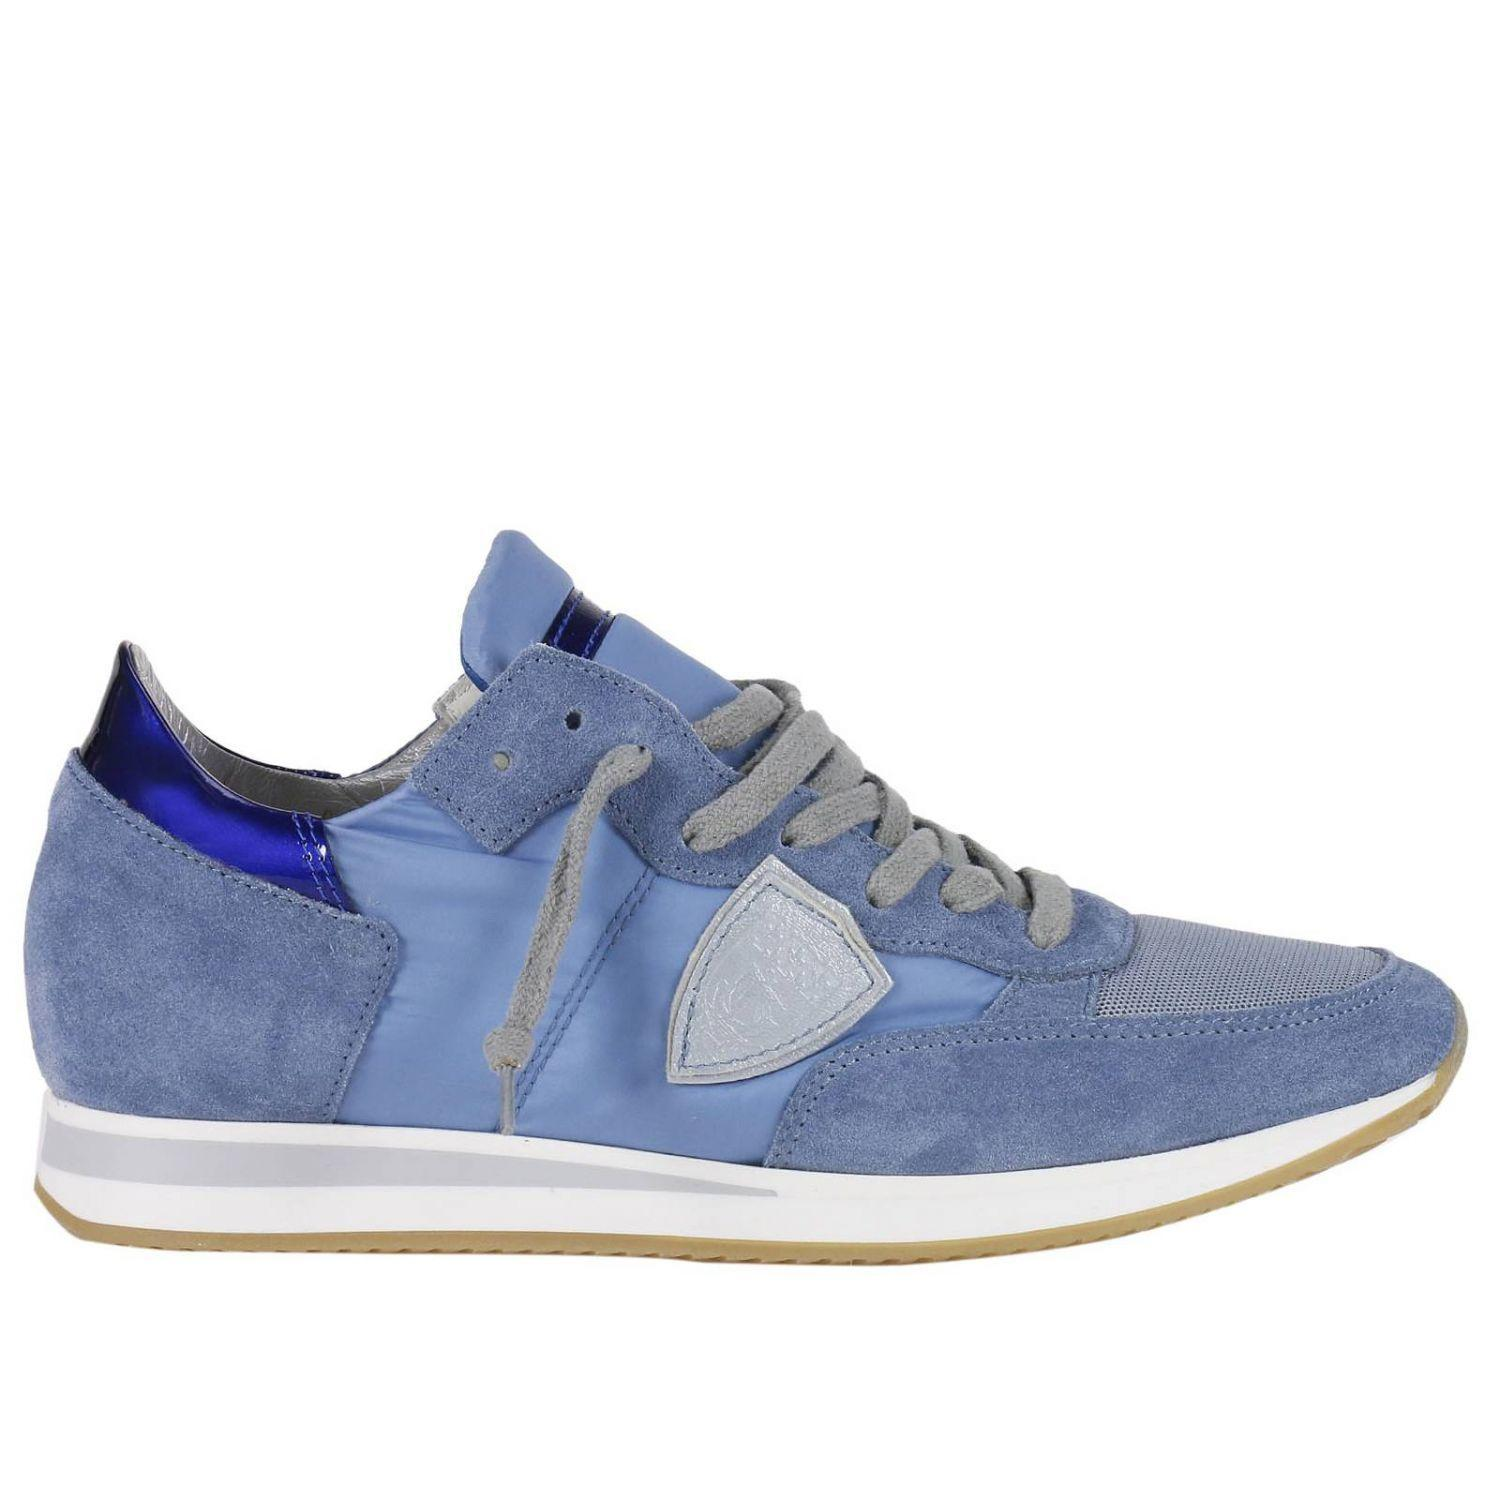 Philippe Model Sneakers Shoes Women  In Gnawed Blue